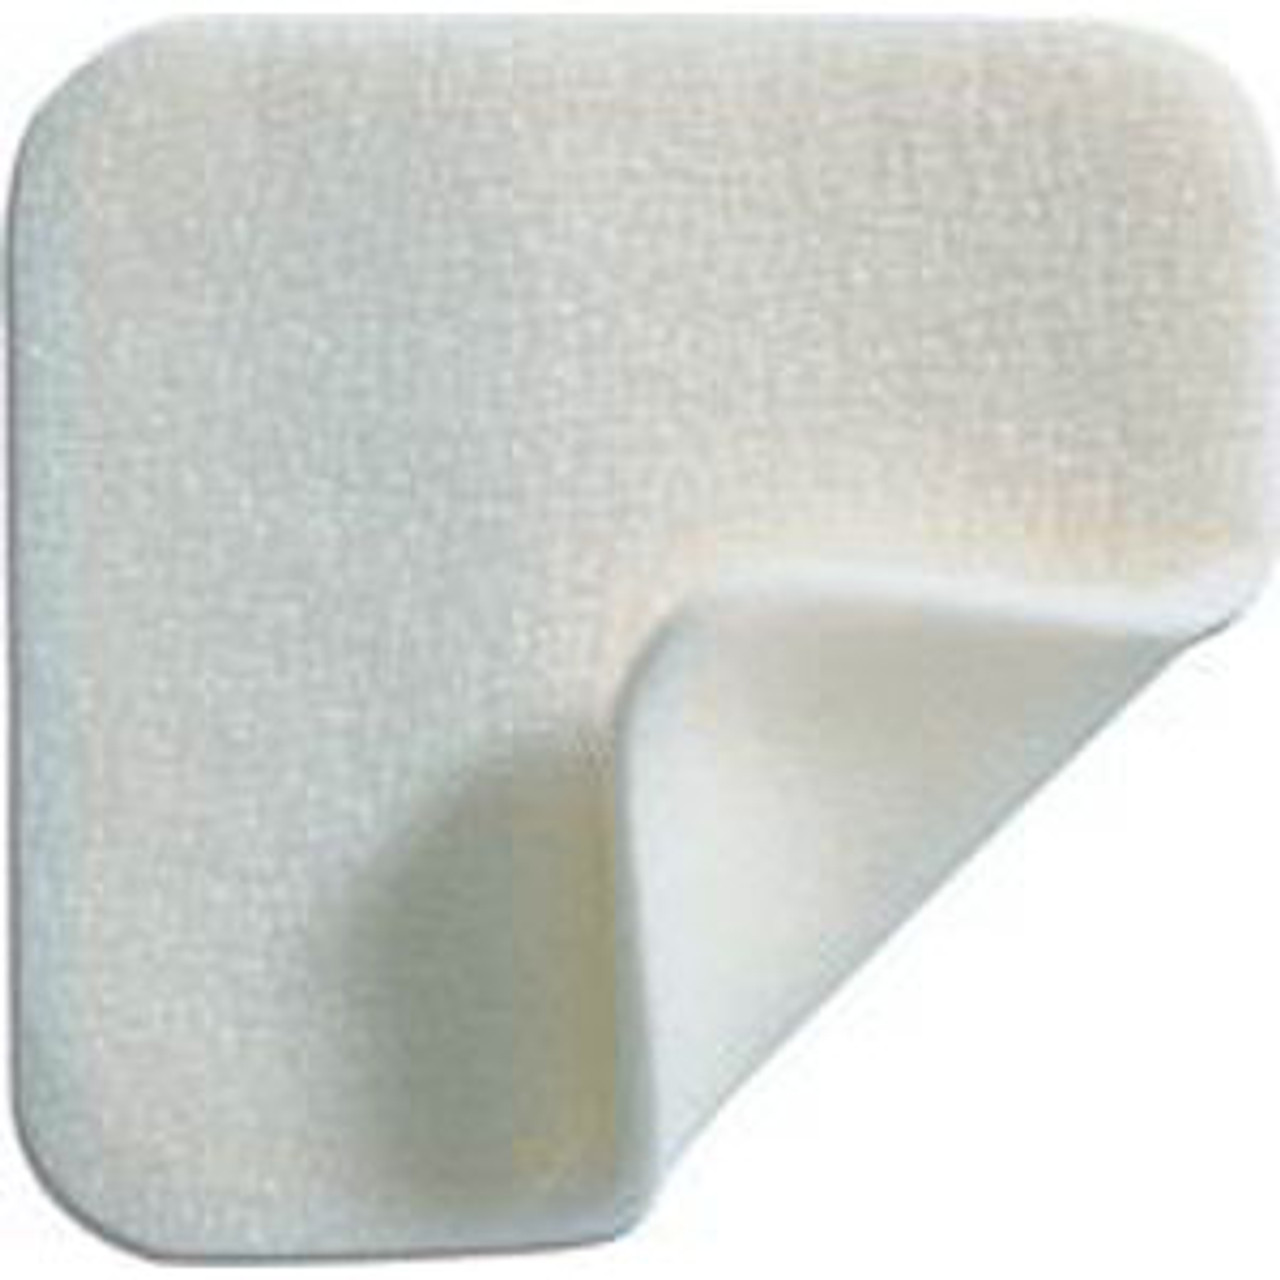 Mepilex - Soft and conformable foam dressing: 8˝ x 20˝ (20 x 50 cm), 1/box